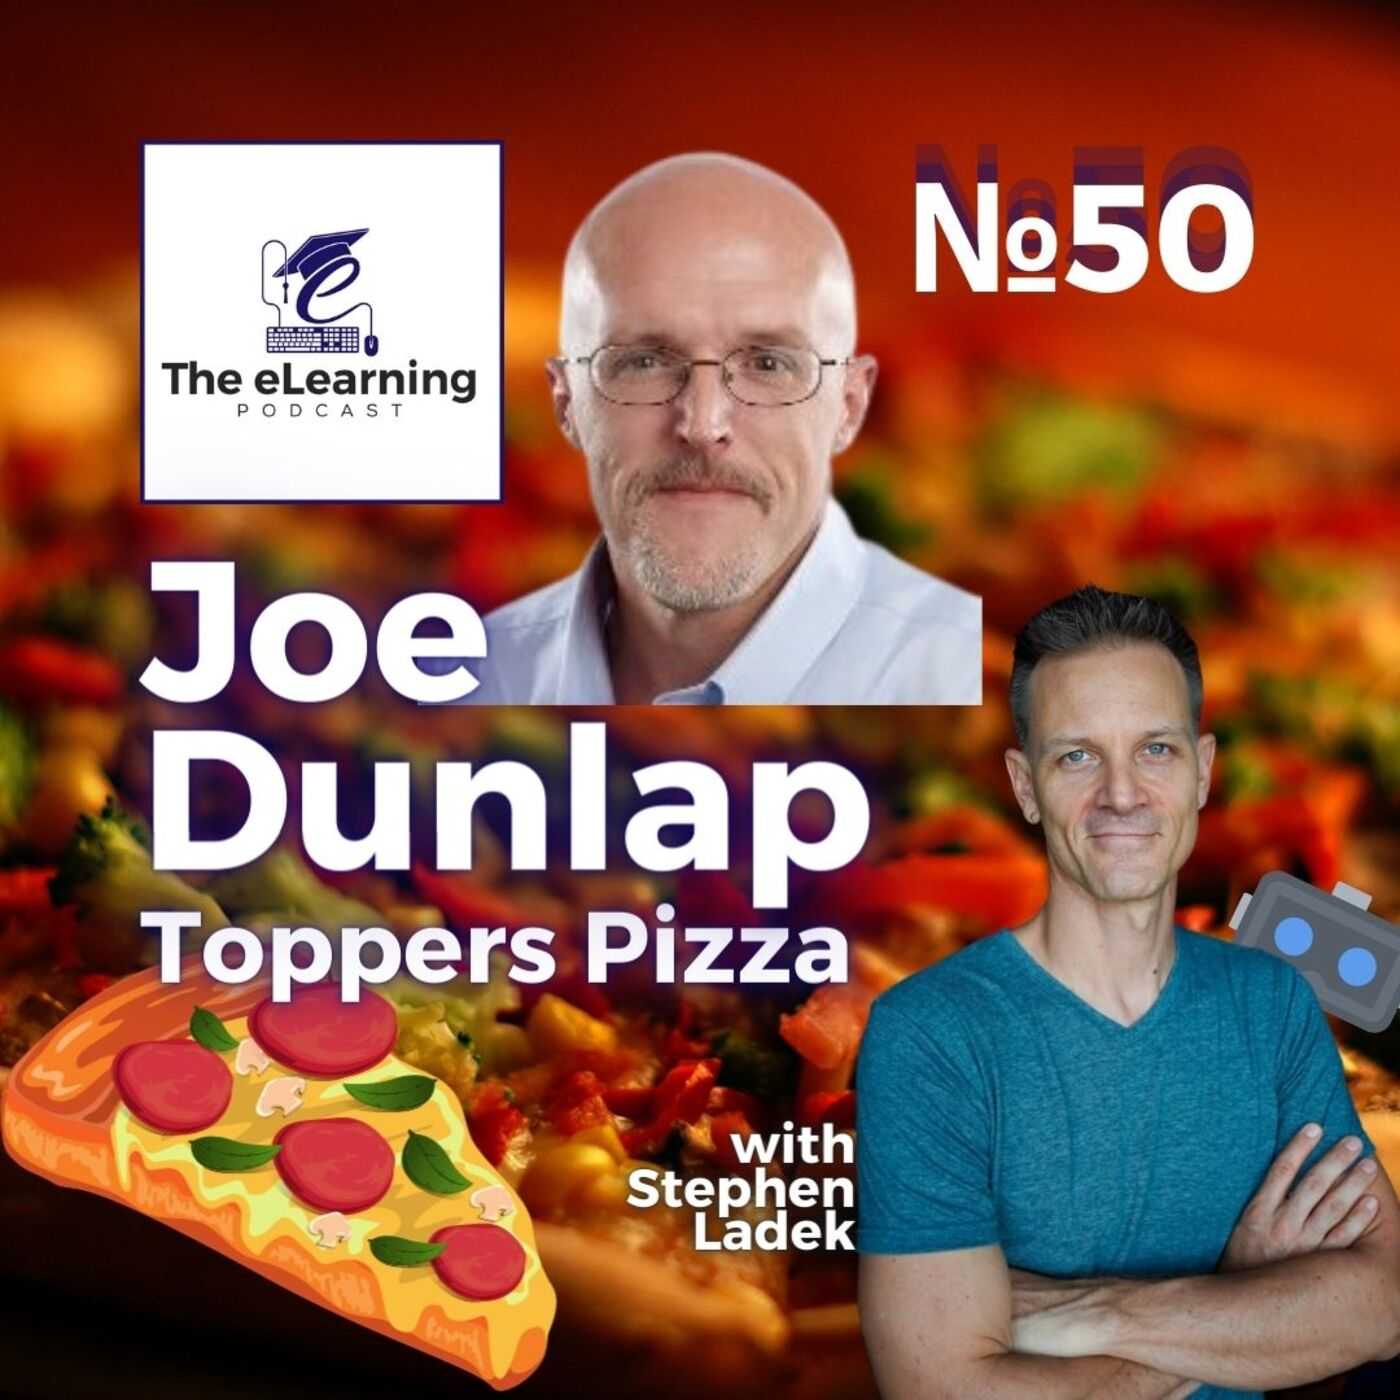 Agile Learning & Development At Toppers Pizza, NASA With Joe Dunlap